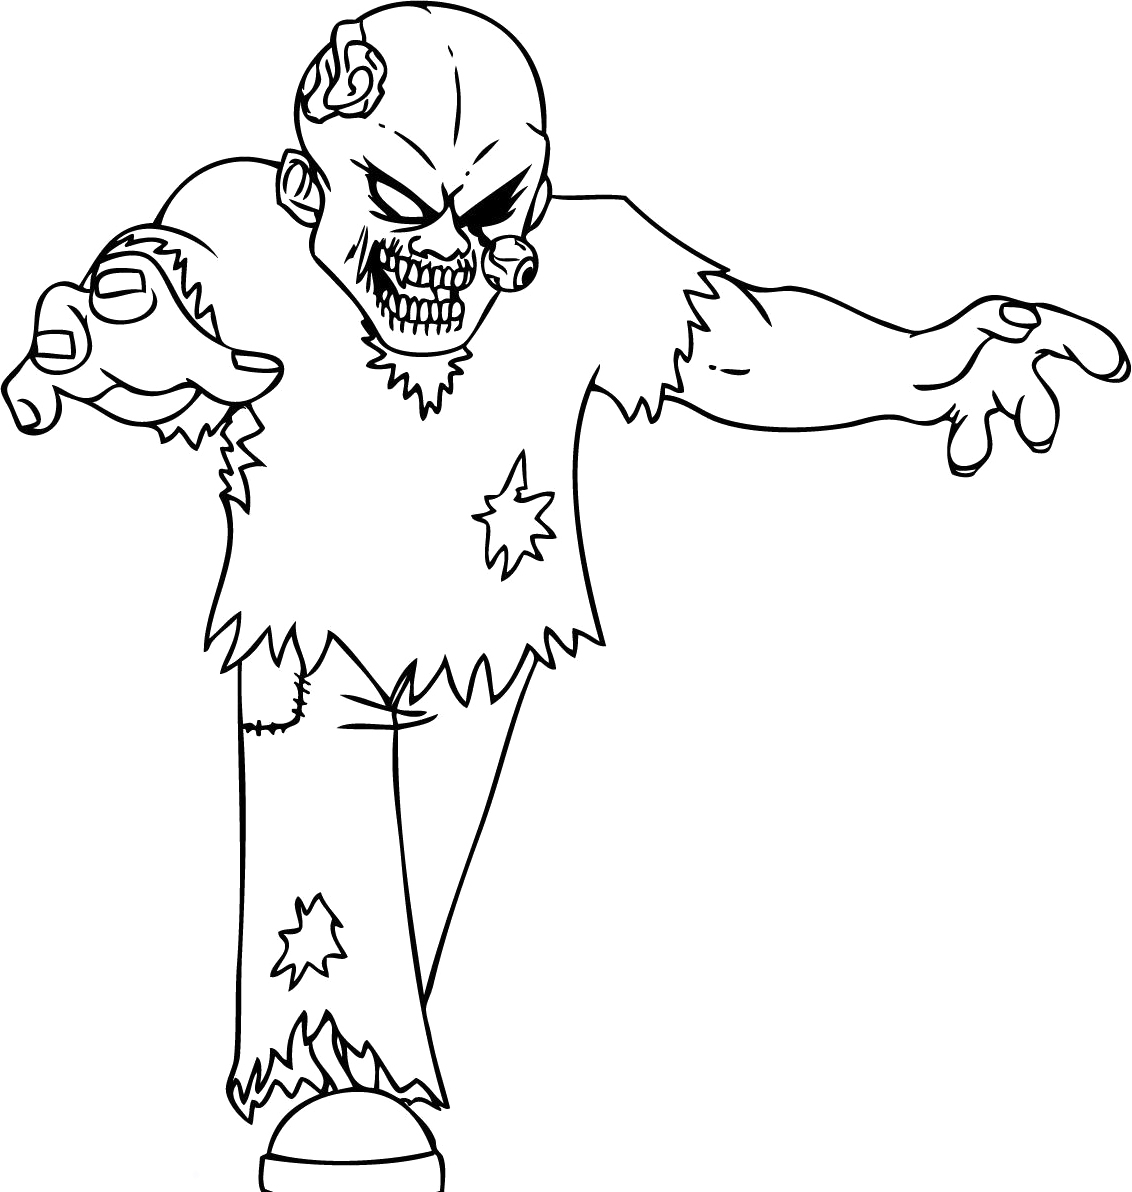 zombie coloring pages zombie head coloring page coloring pages zombie